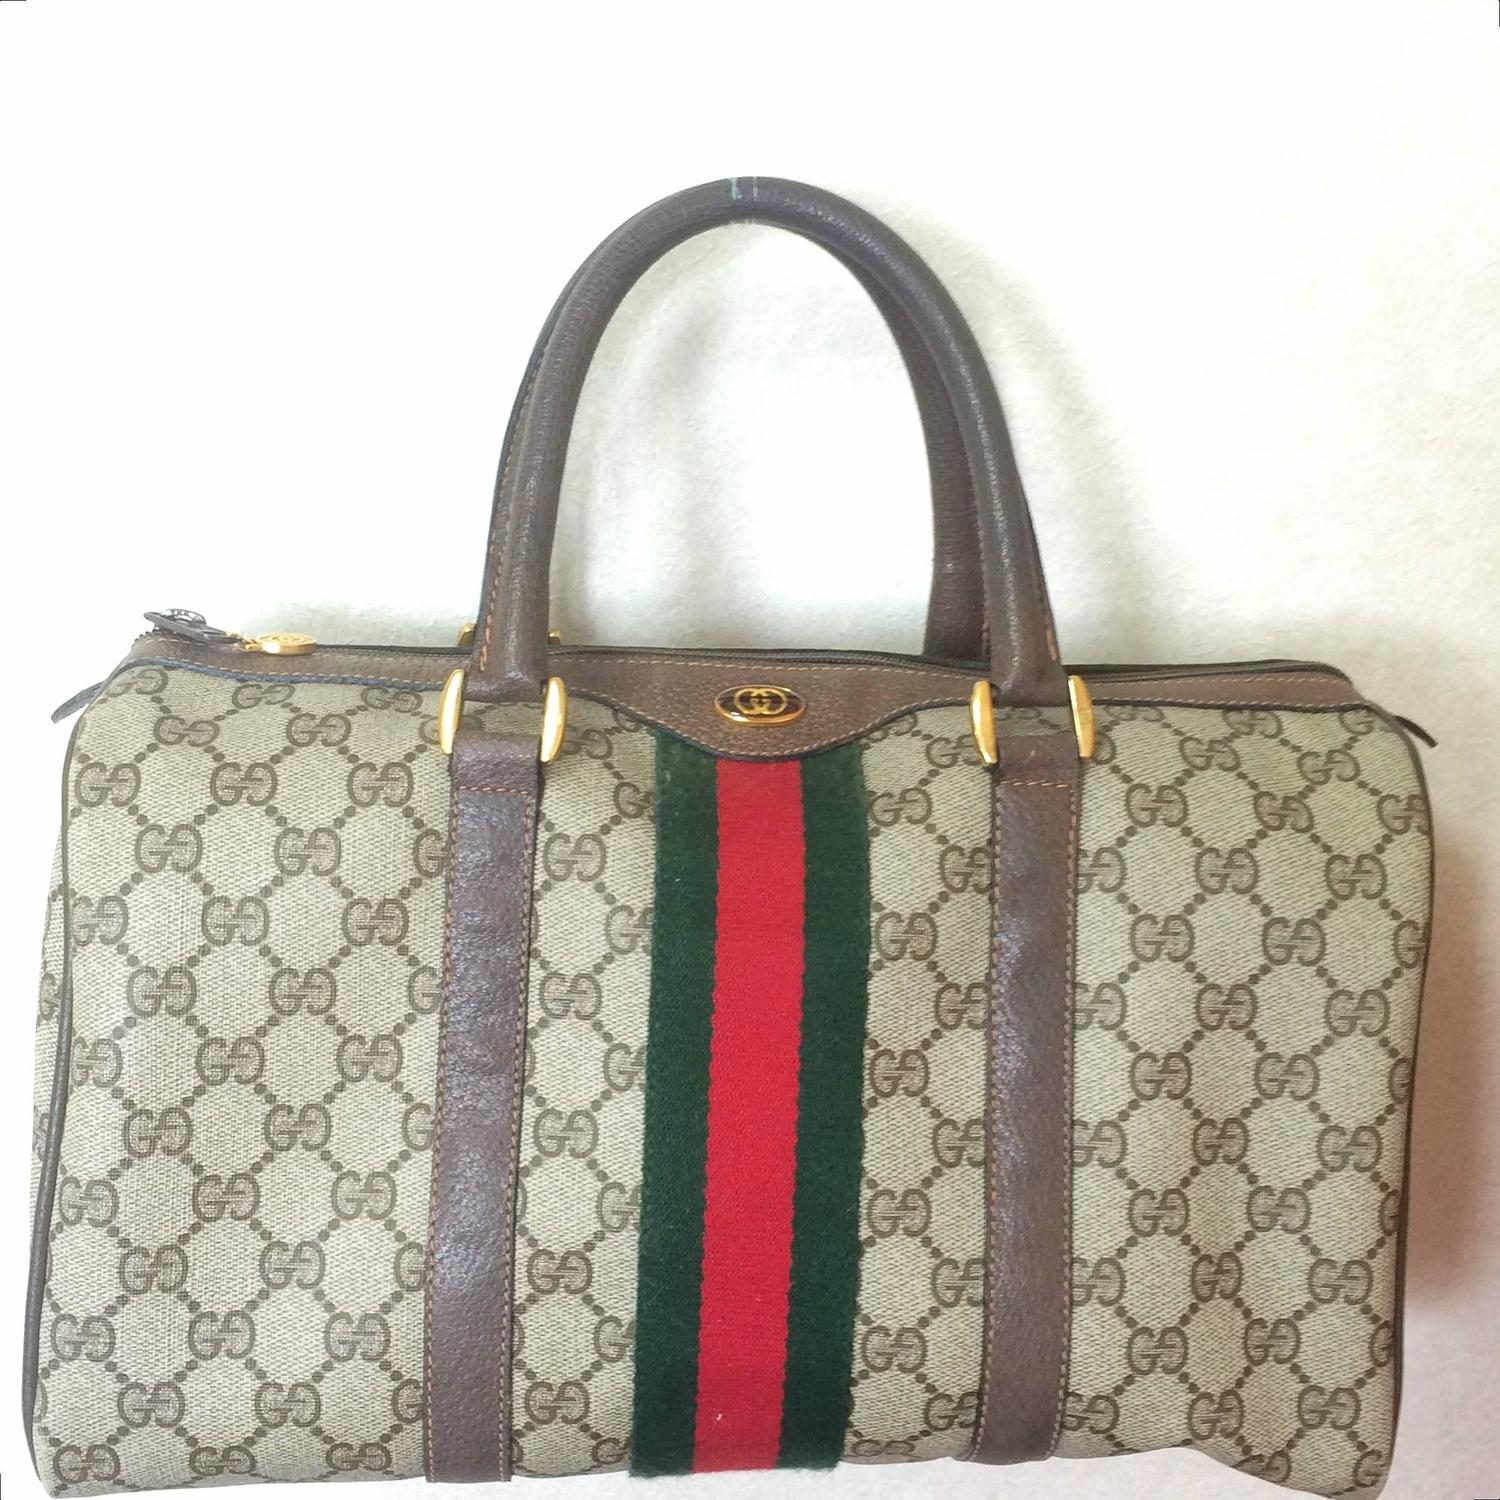 62c843bc5ea993 List Of Gucci Handbag Styles | Stanford Center for Opportunity ...